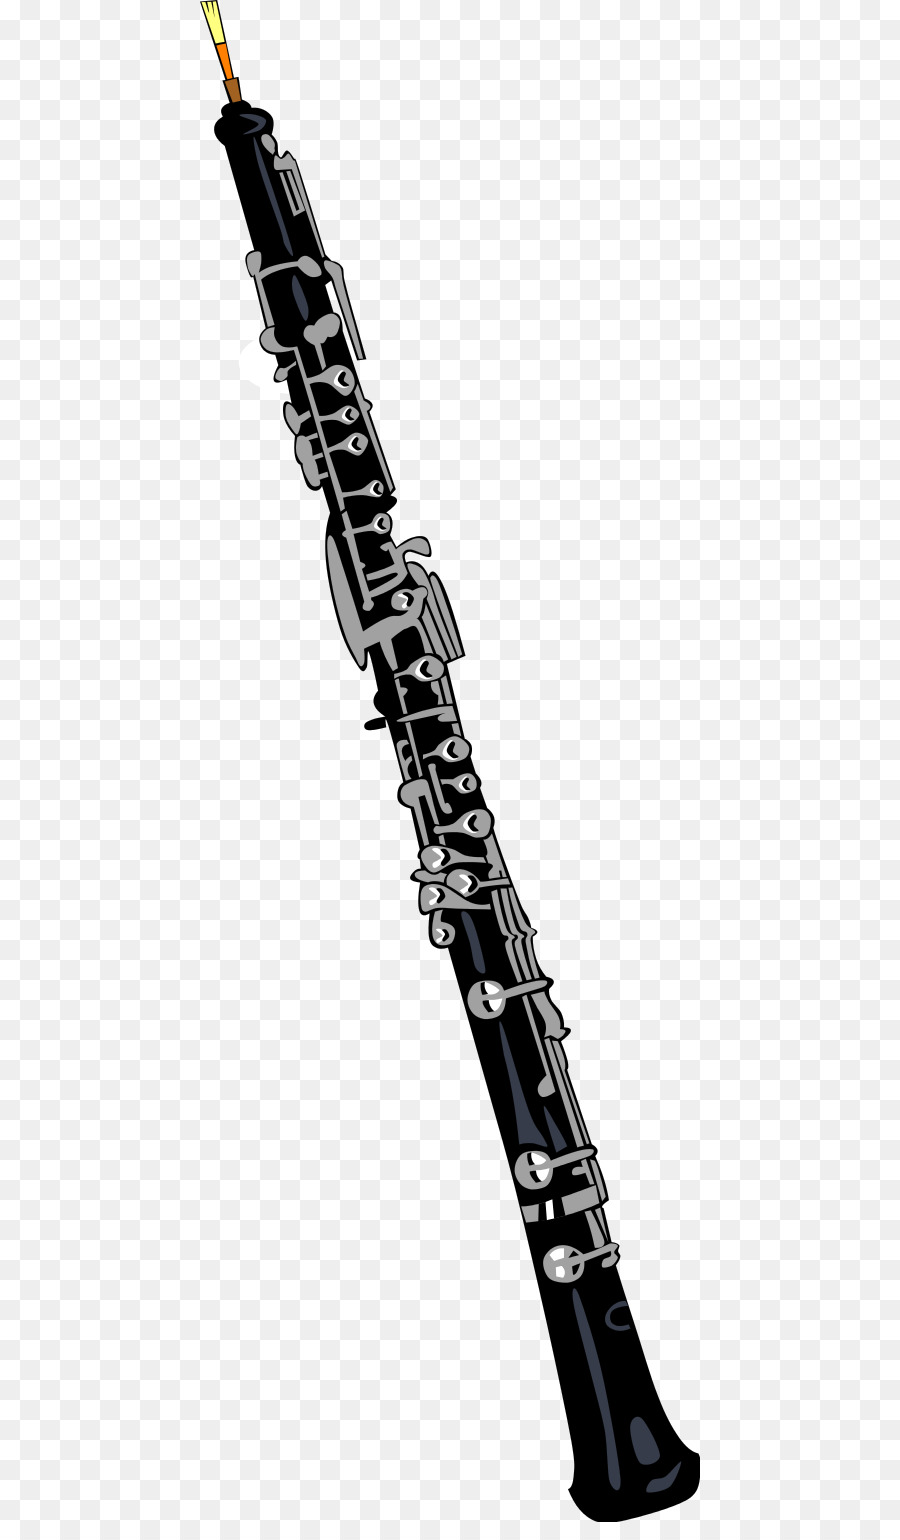 Oboe musical instruments clip. Clarinet clipart